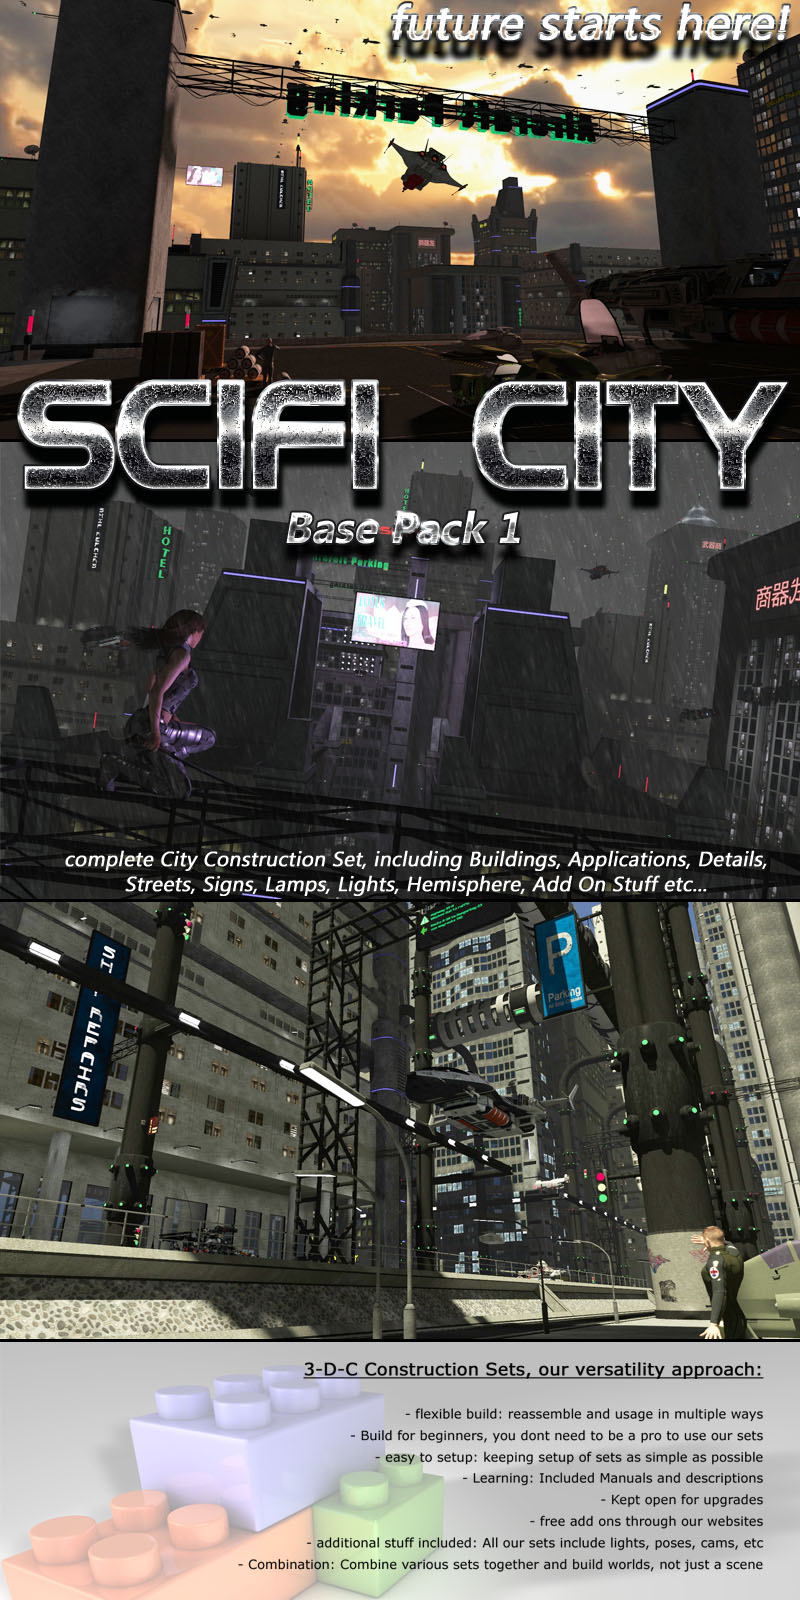 SciFi City Construction Base 1 - Extended License